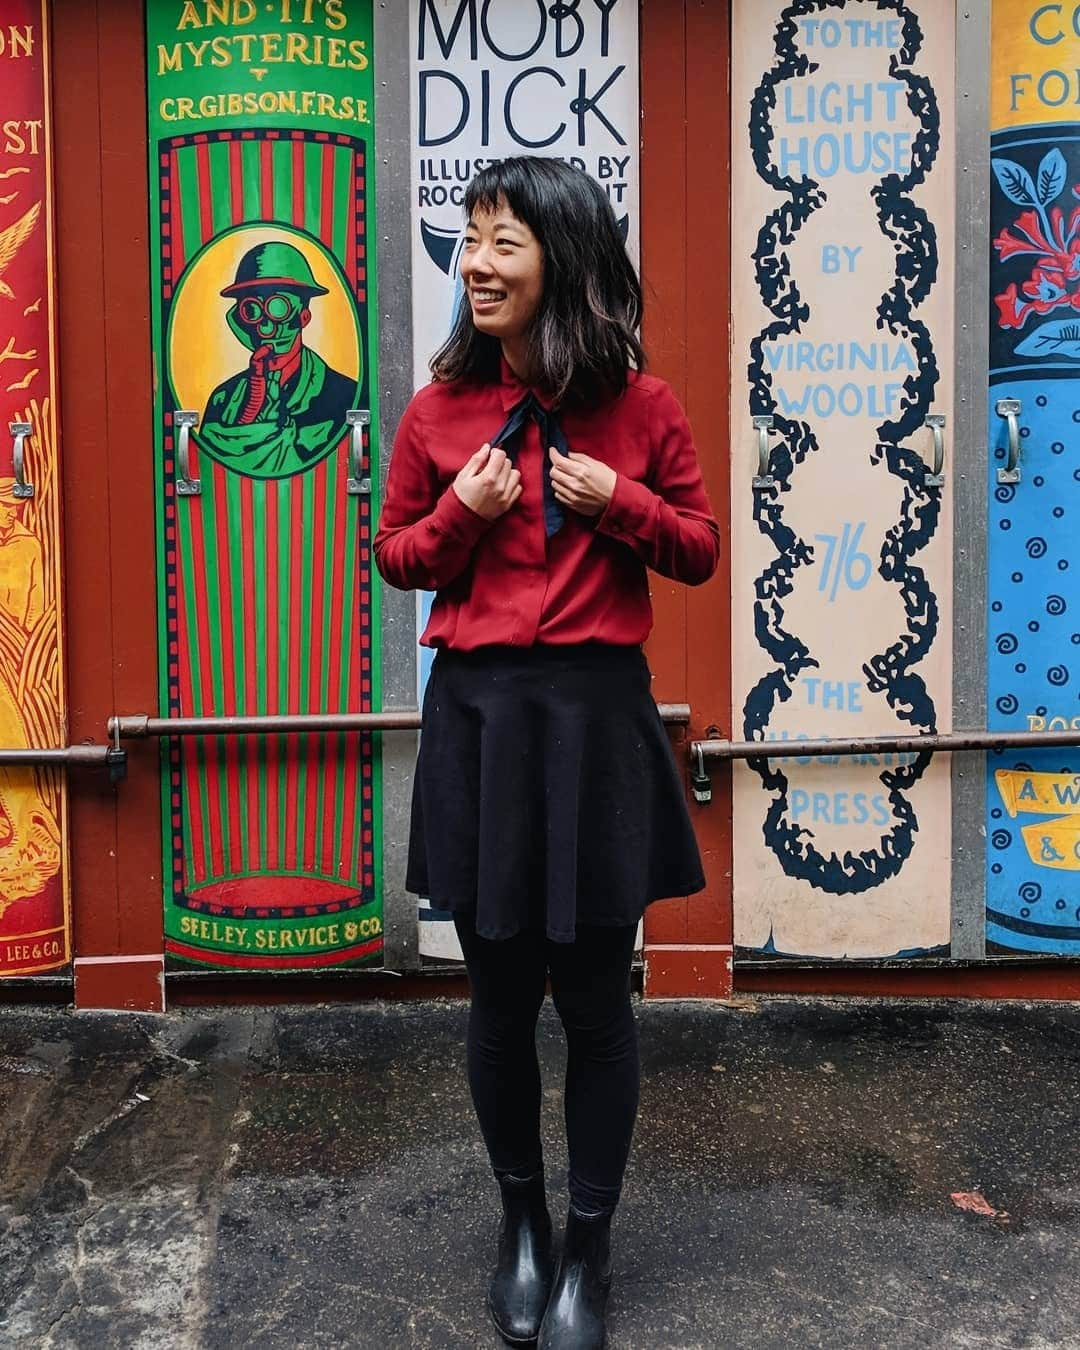 me standing in front of a colorful mural of book spines at Brattle Book Shop